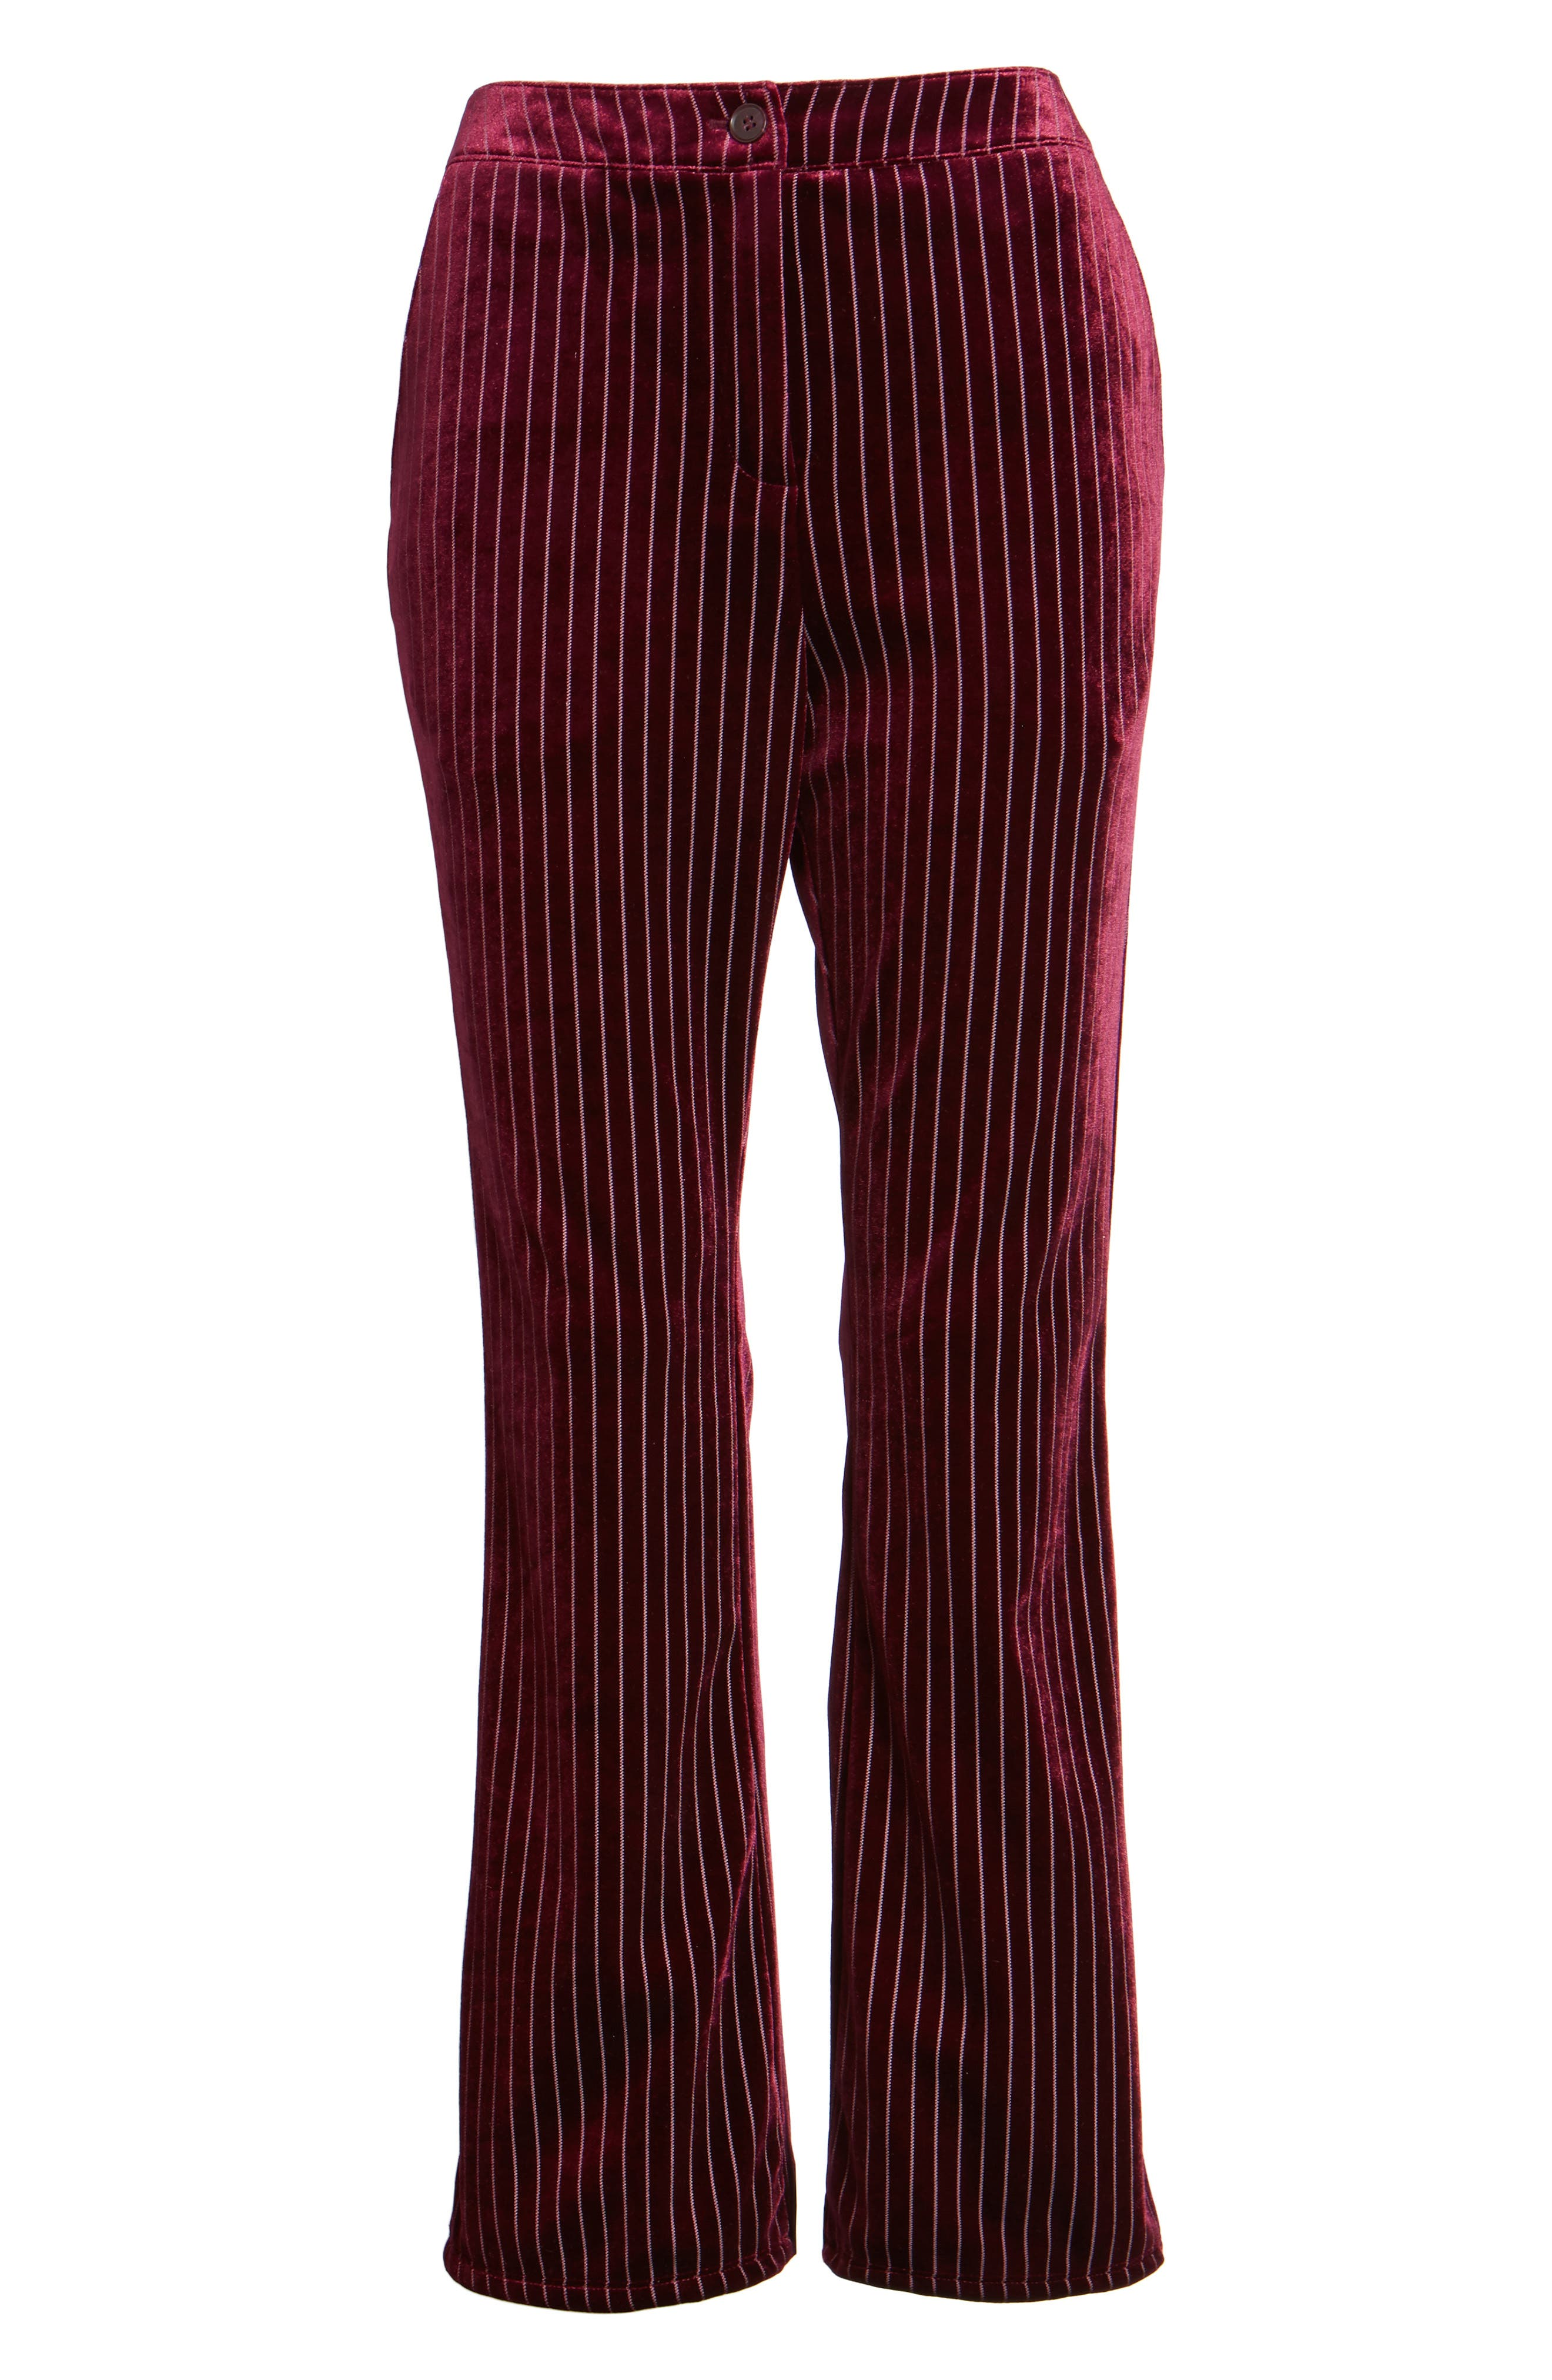 Velour Ankle Trousers,                             Alternate thumbnail 6, color,                             Red Tannin Dotted Stripe